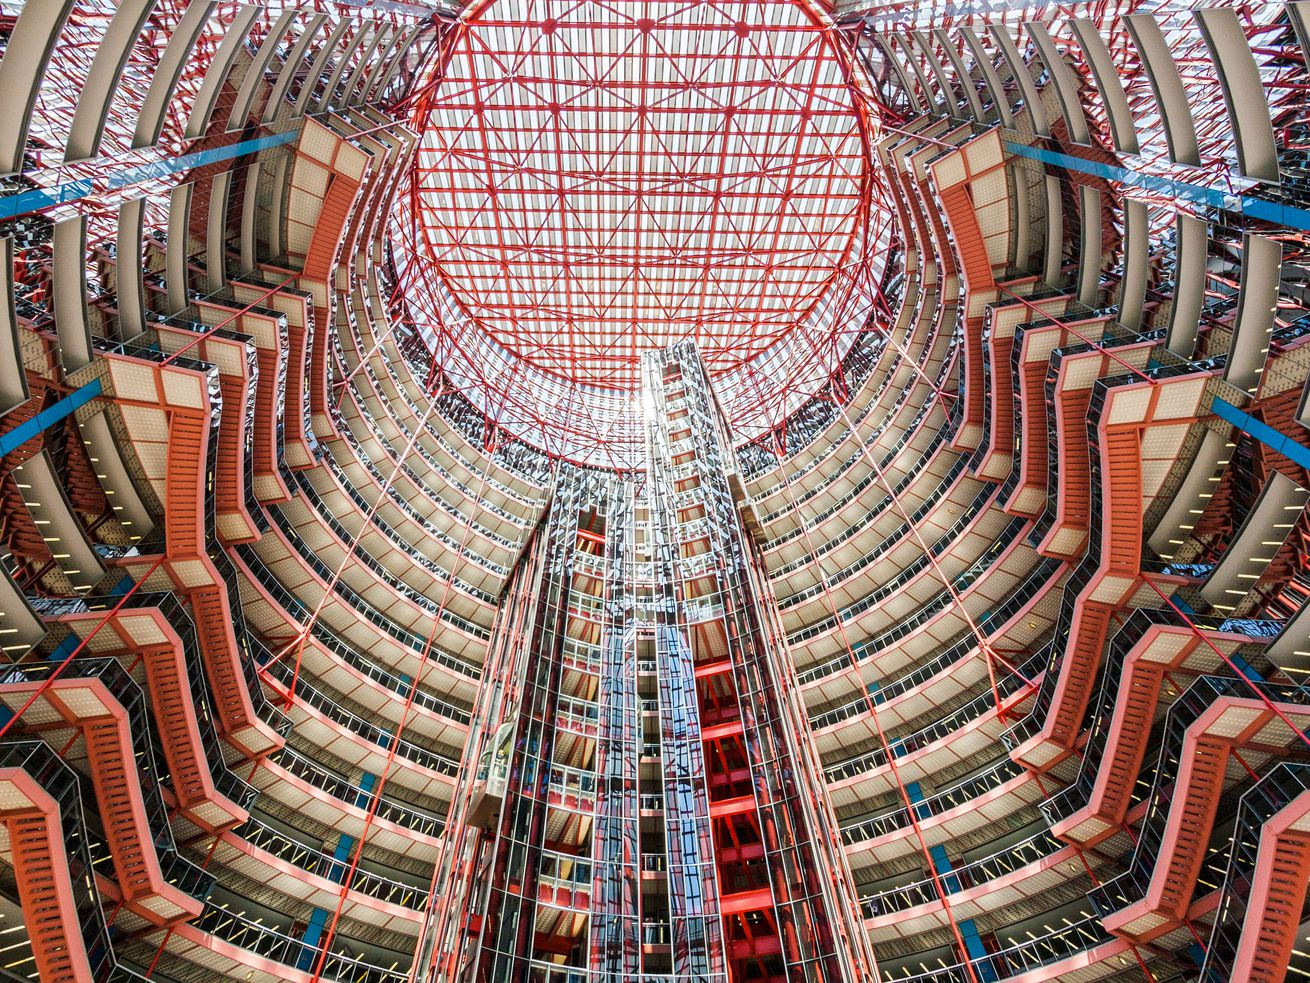 The Thompson Center's 17-story atrium is one of Chicago's great public spaces, argue its proponents.